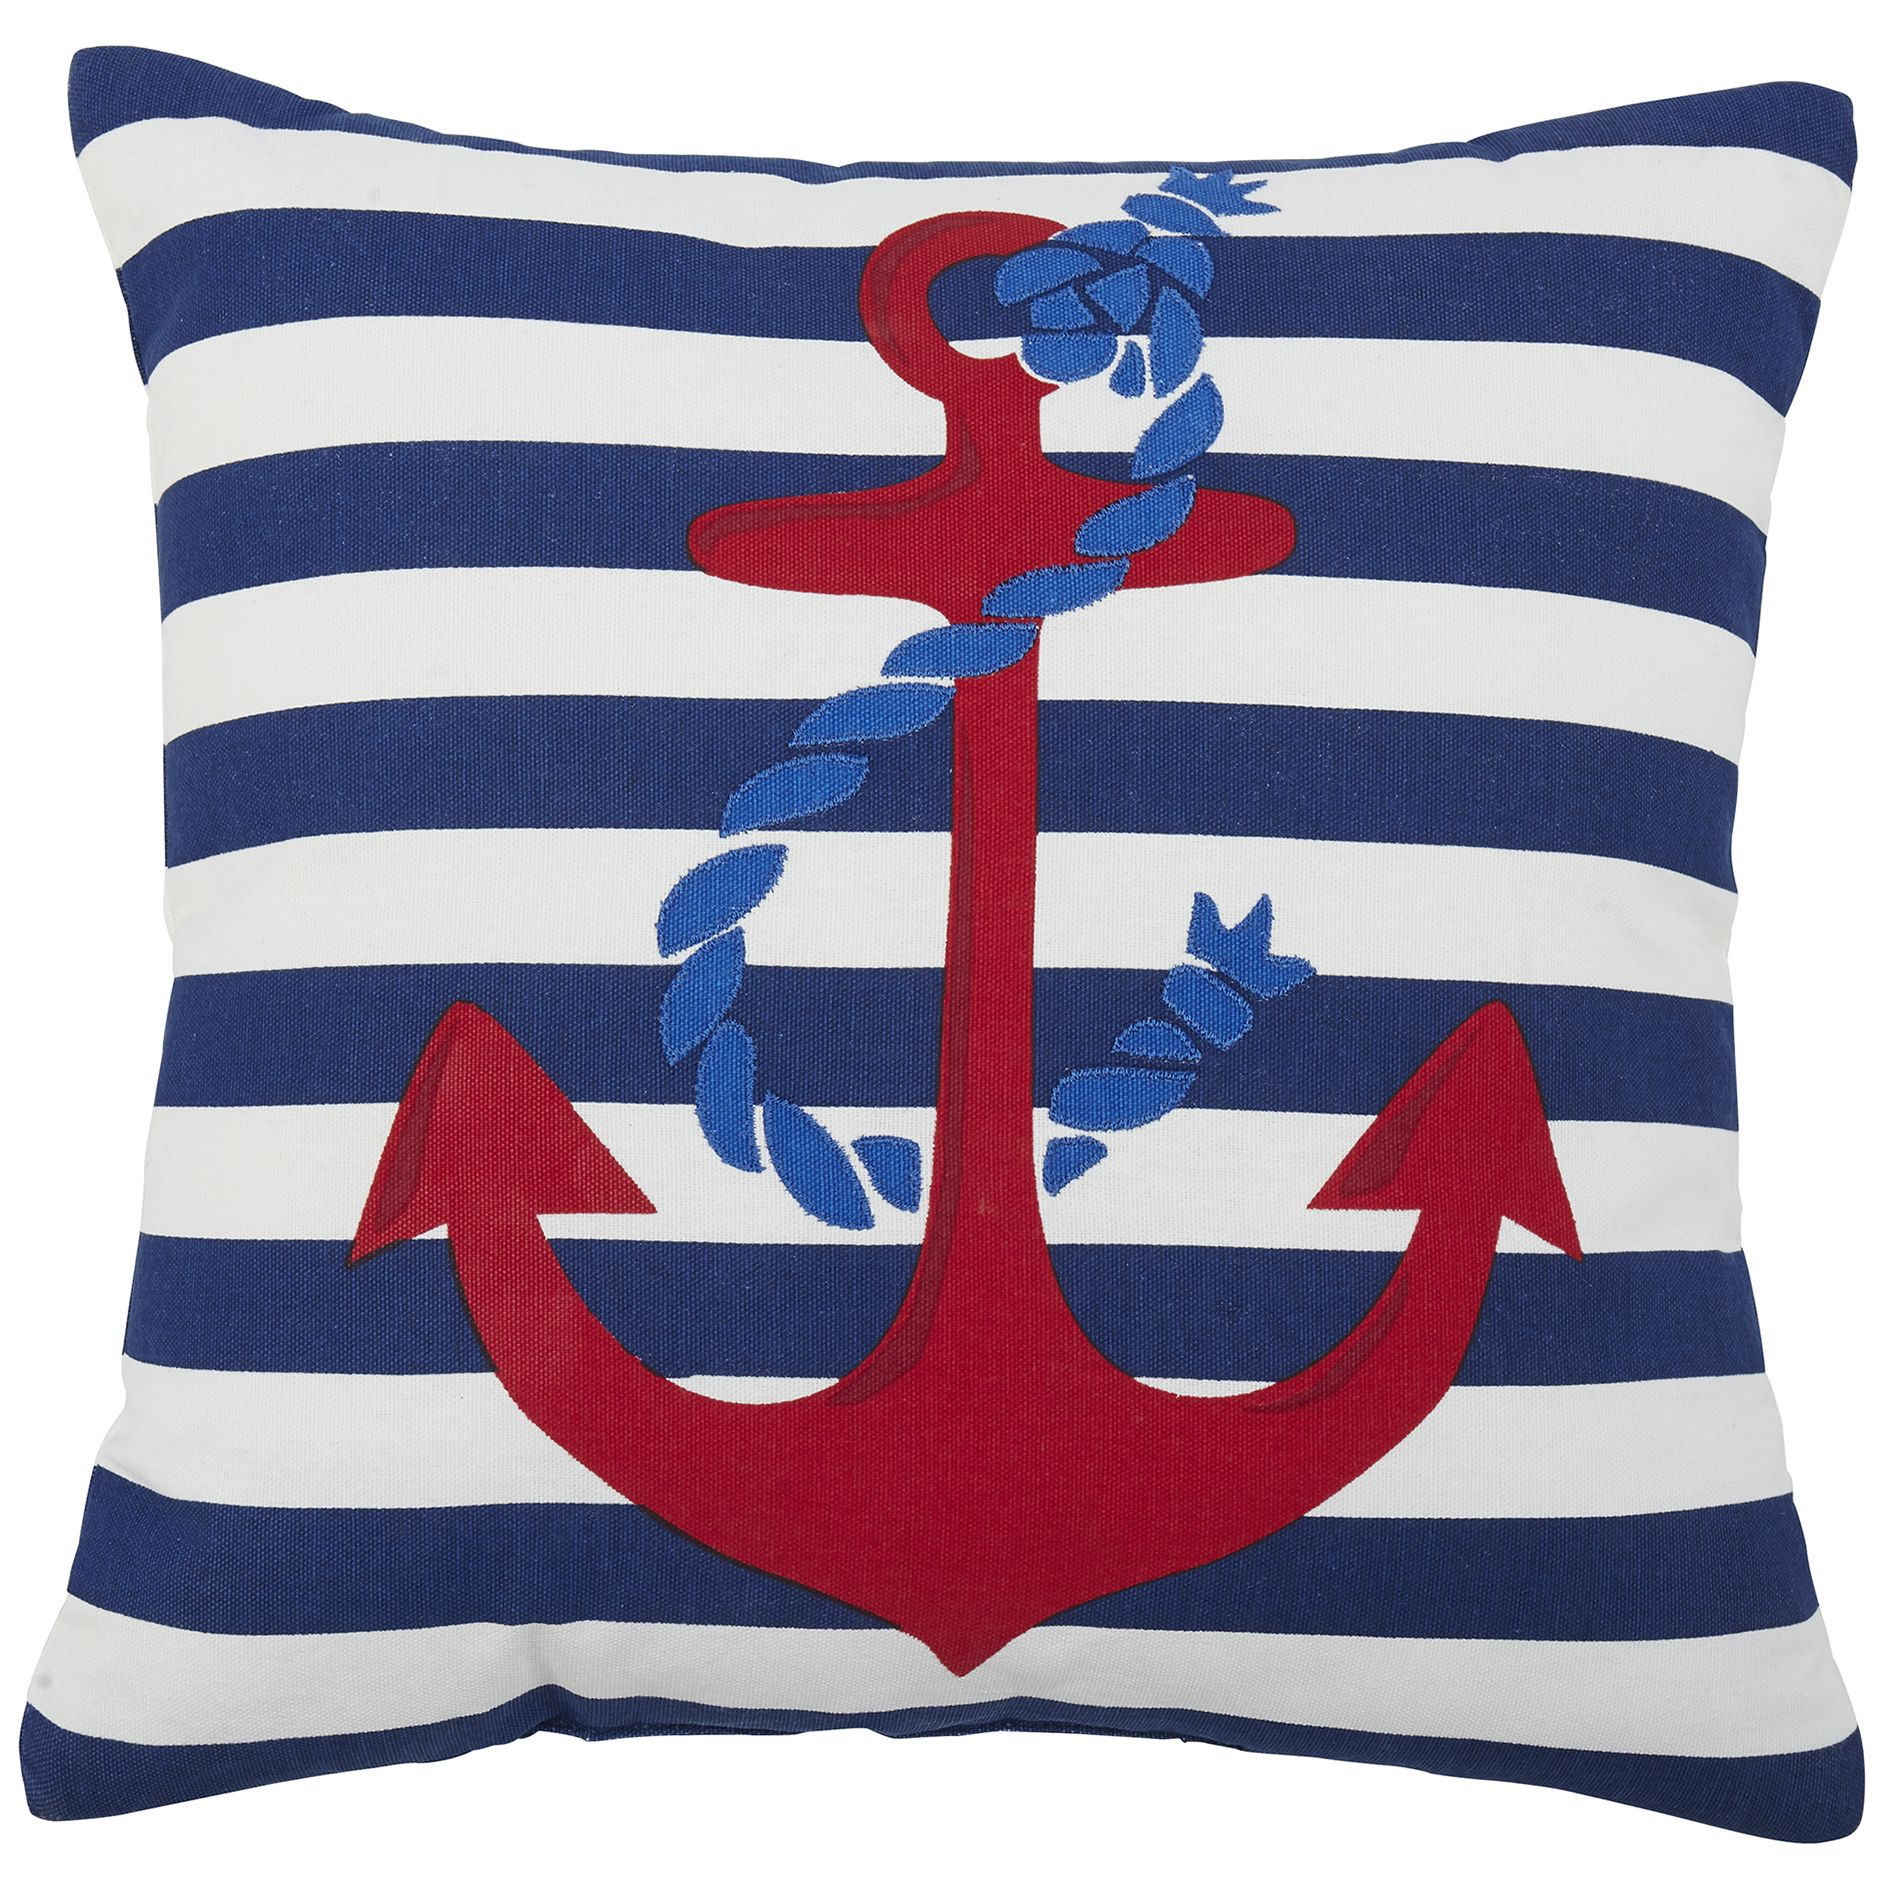 Sutton Rowe Outdoor Pillow Anchor Outdoor Pillows Rowe Pillows